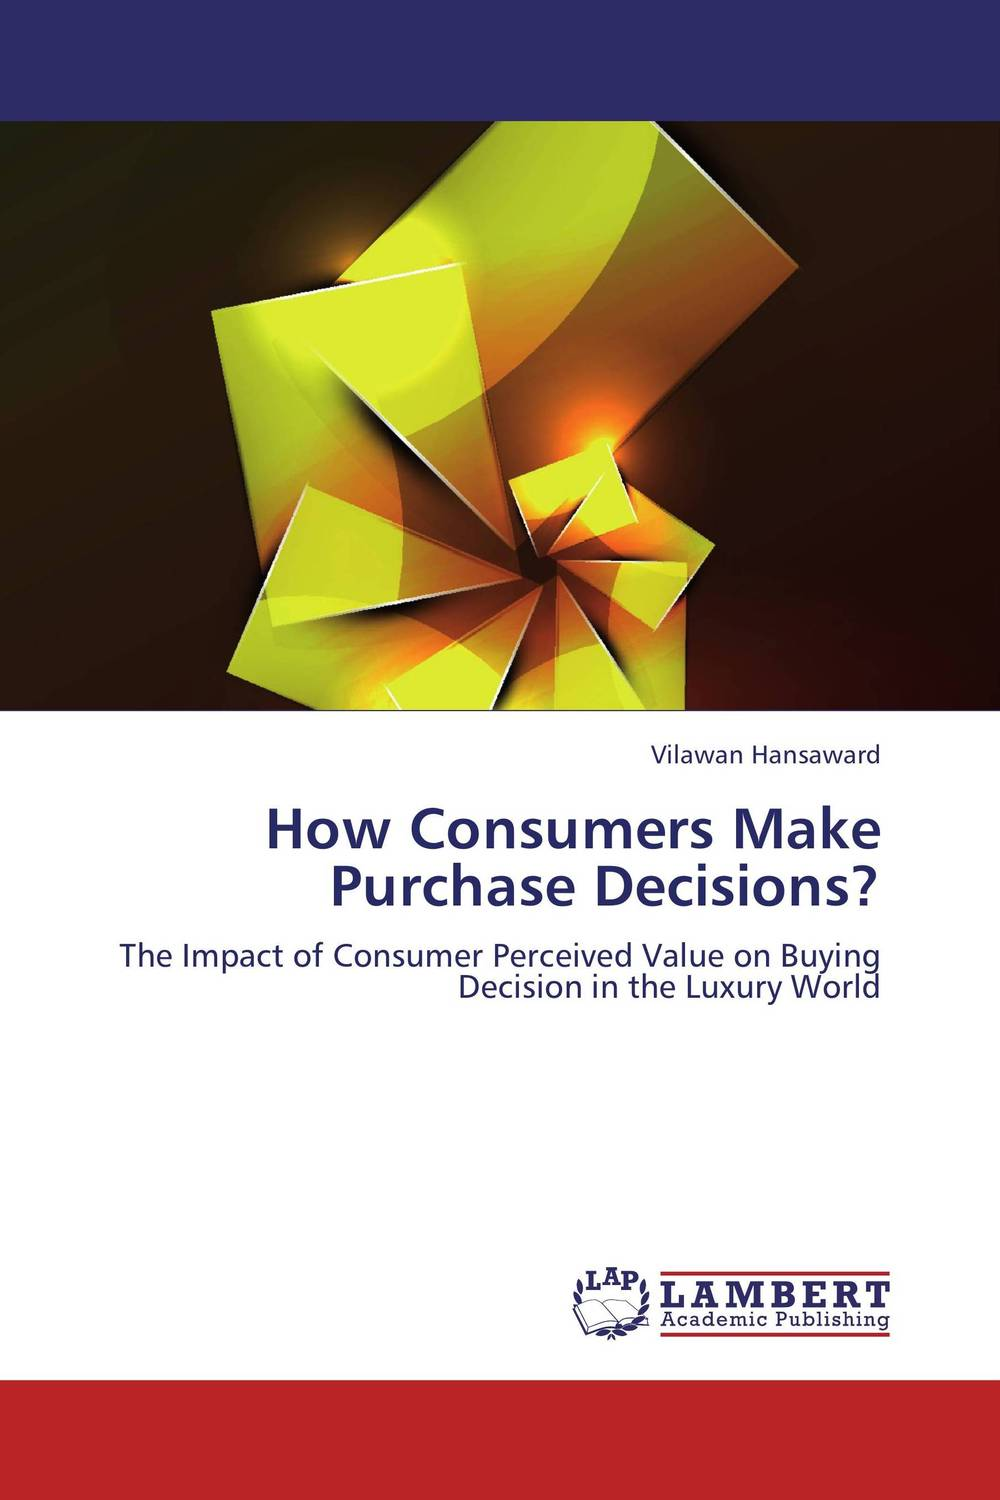 How Consumers Make Purchase Decisions?